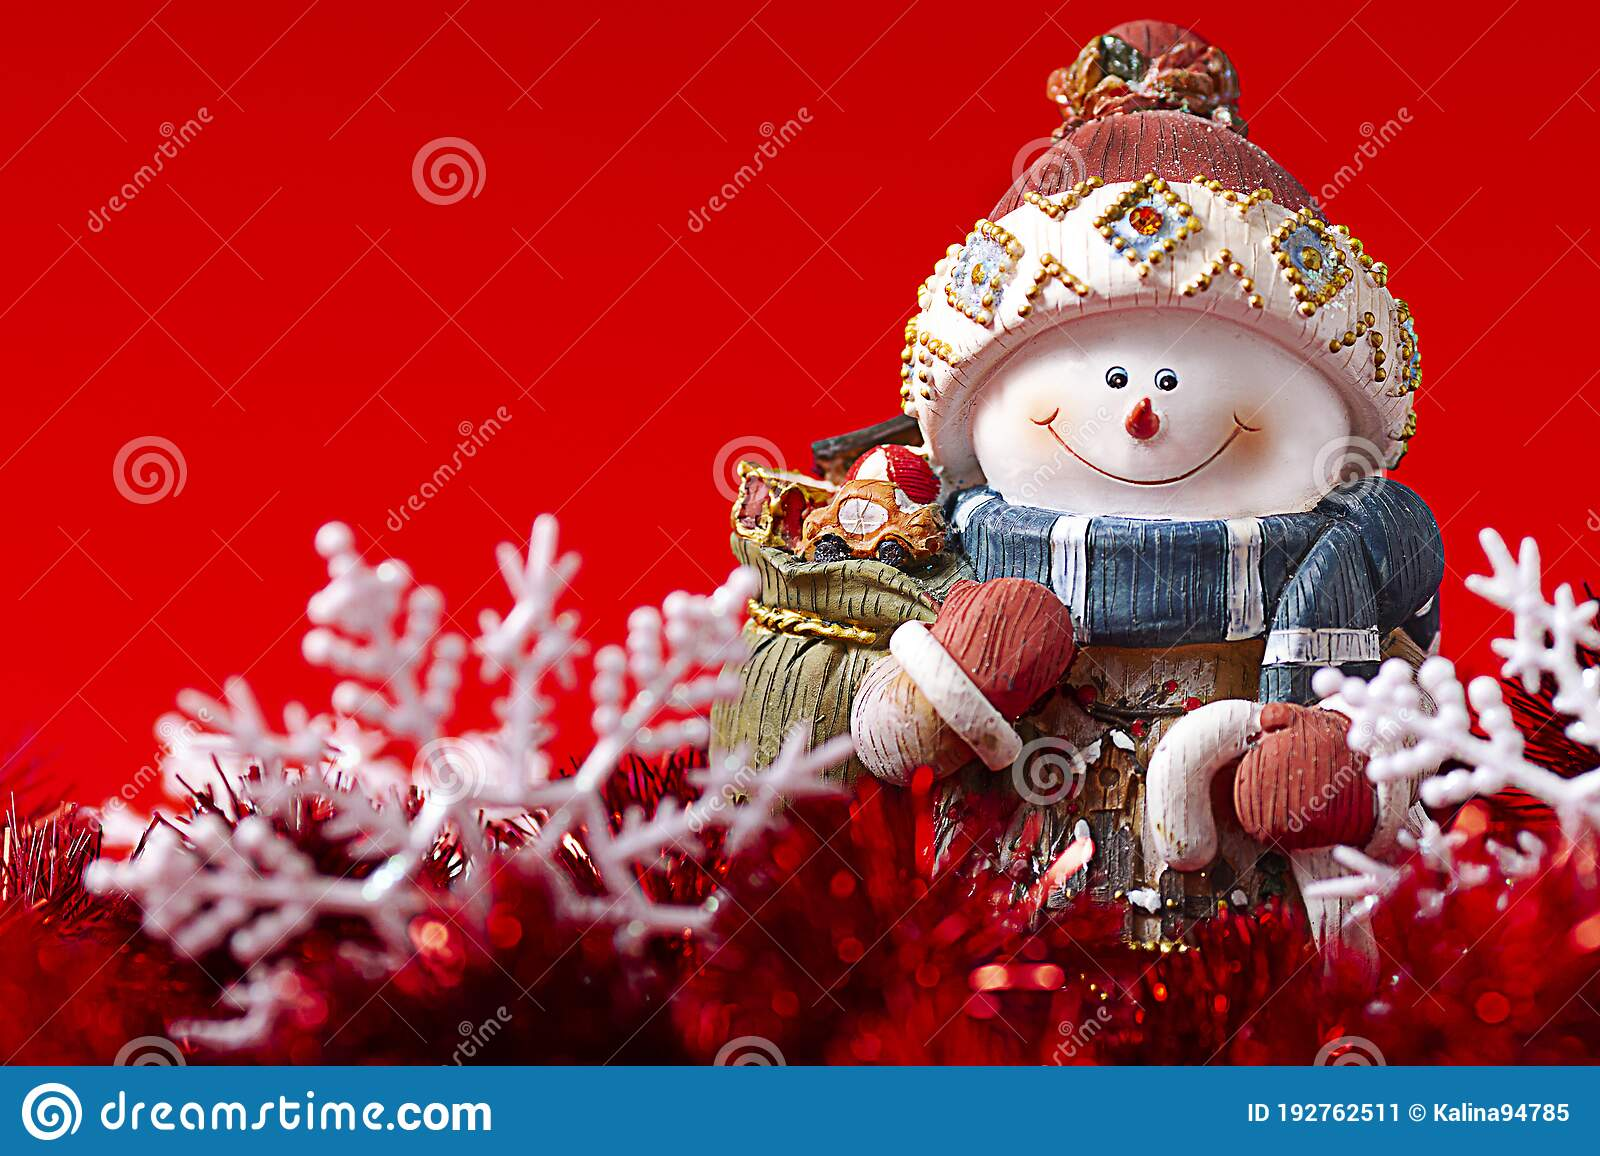 Christmas Toys , Snowman, Happy New Year 2021, Merry ...